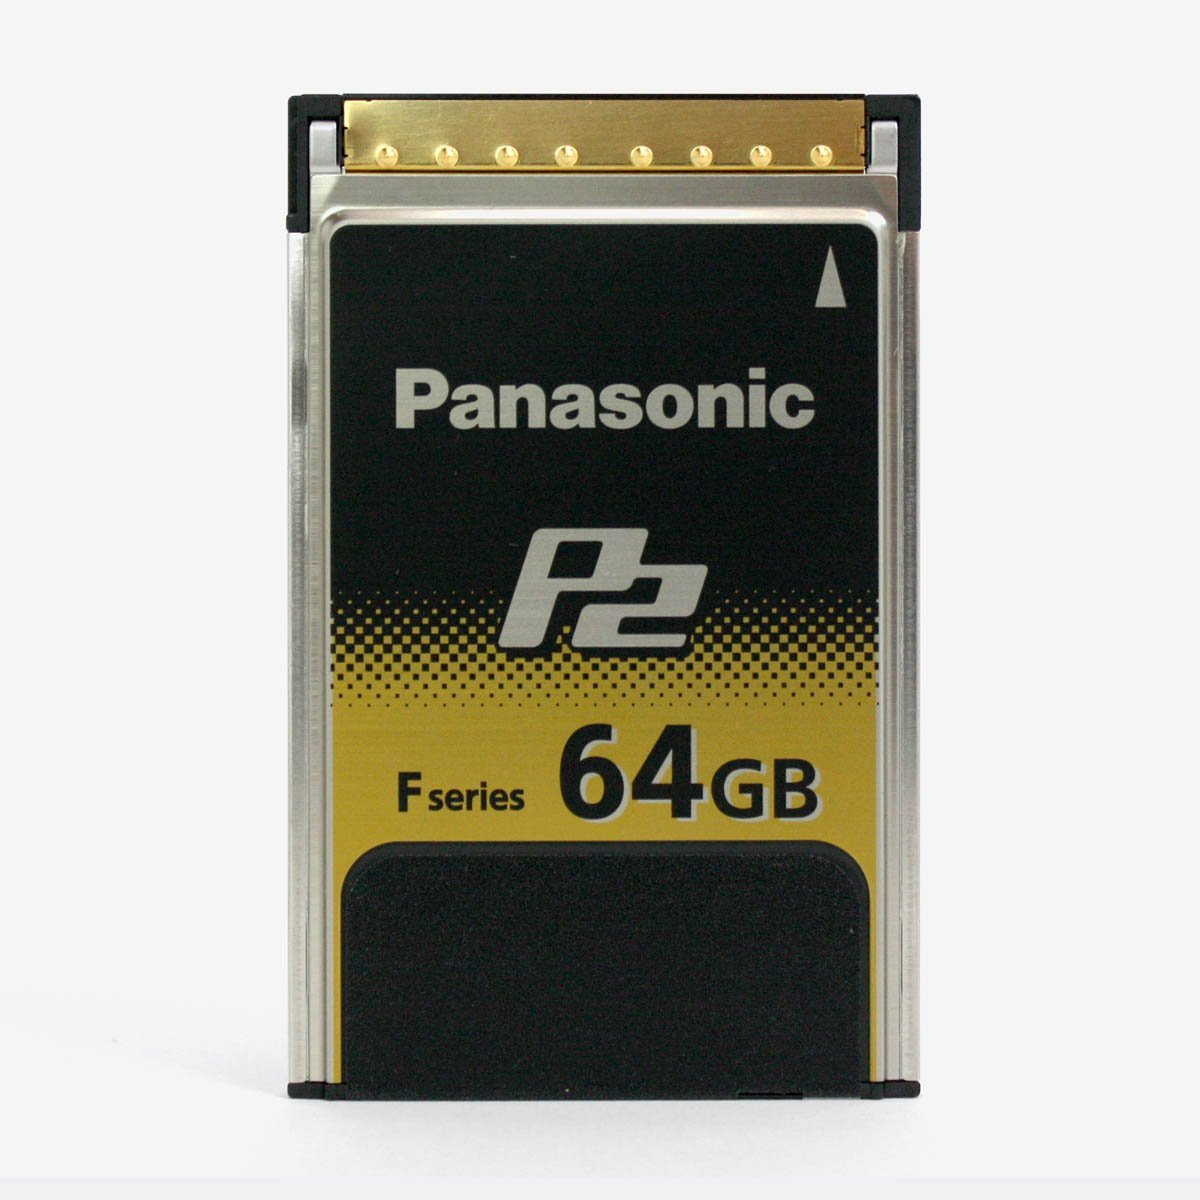 Ex-Demo Panasonic AJ-P2E060FG 60GB P2 F Series Memory Card